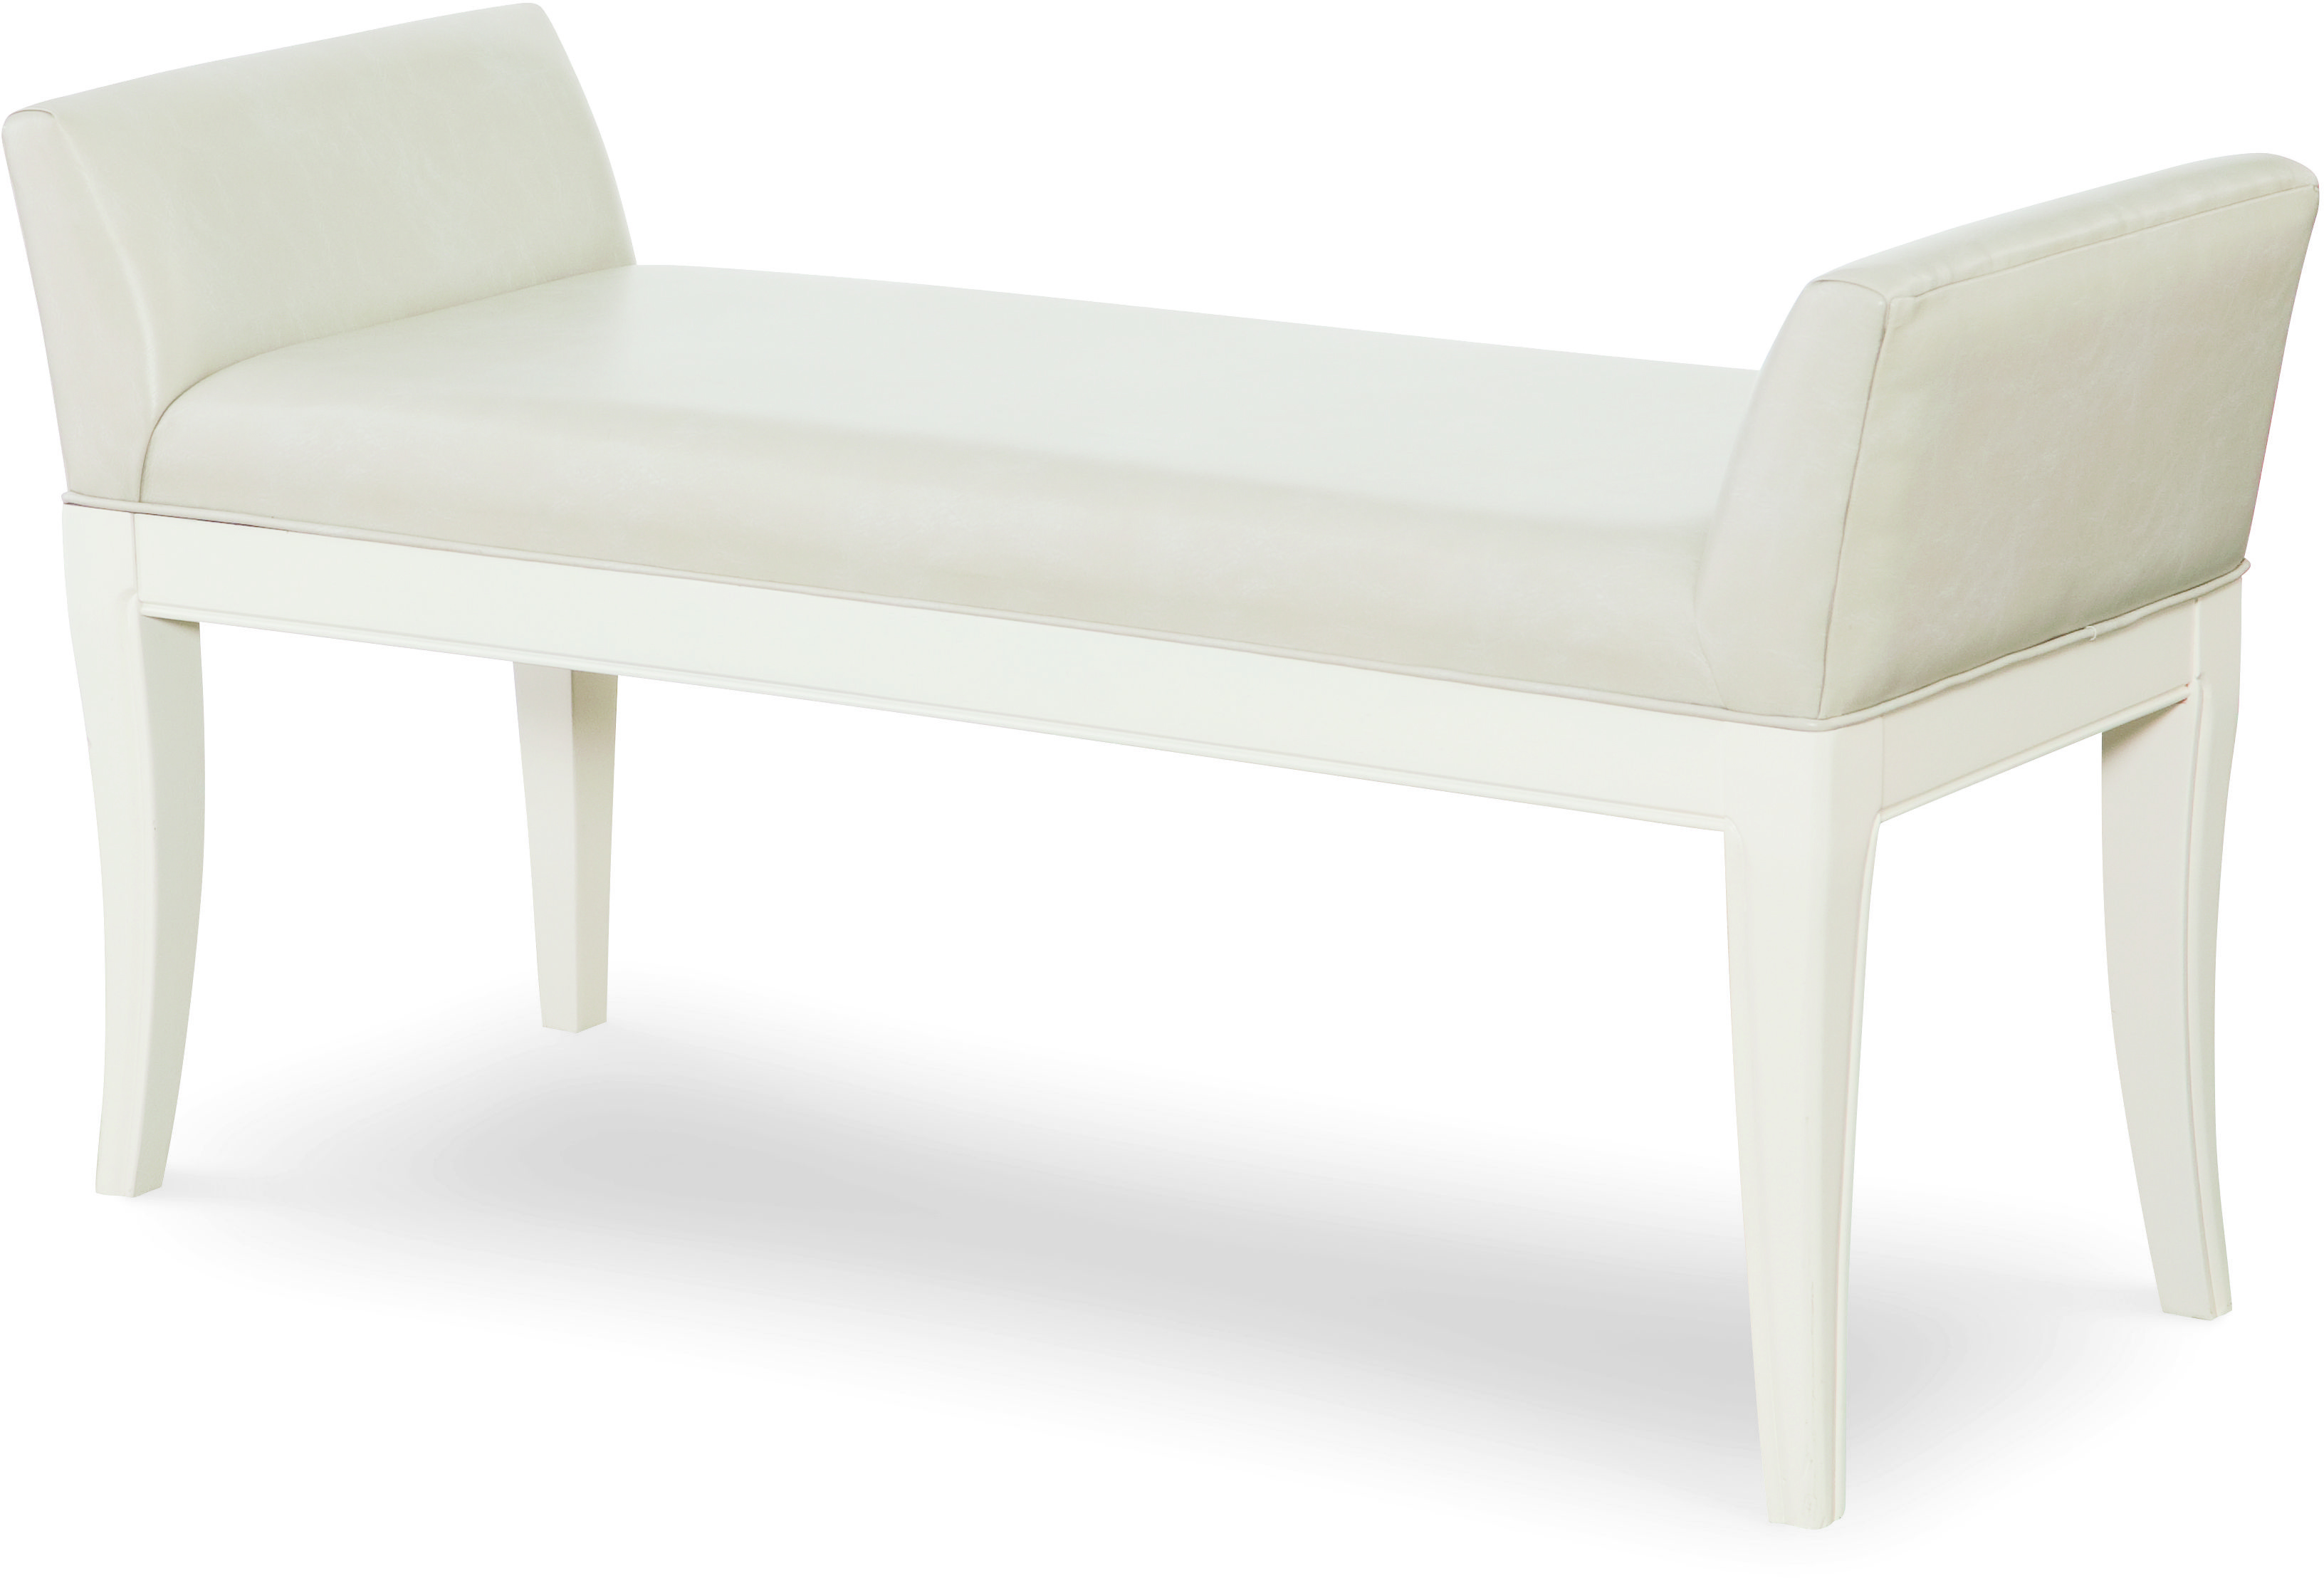 Legacy Classic Tower Suite Bench  - Item Number: 5010-4800